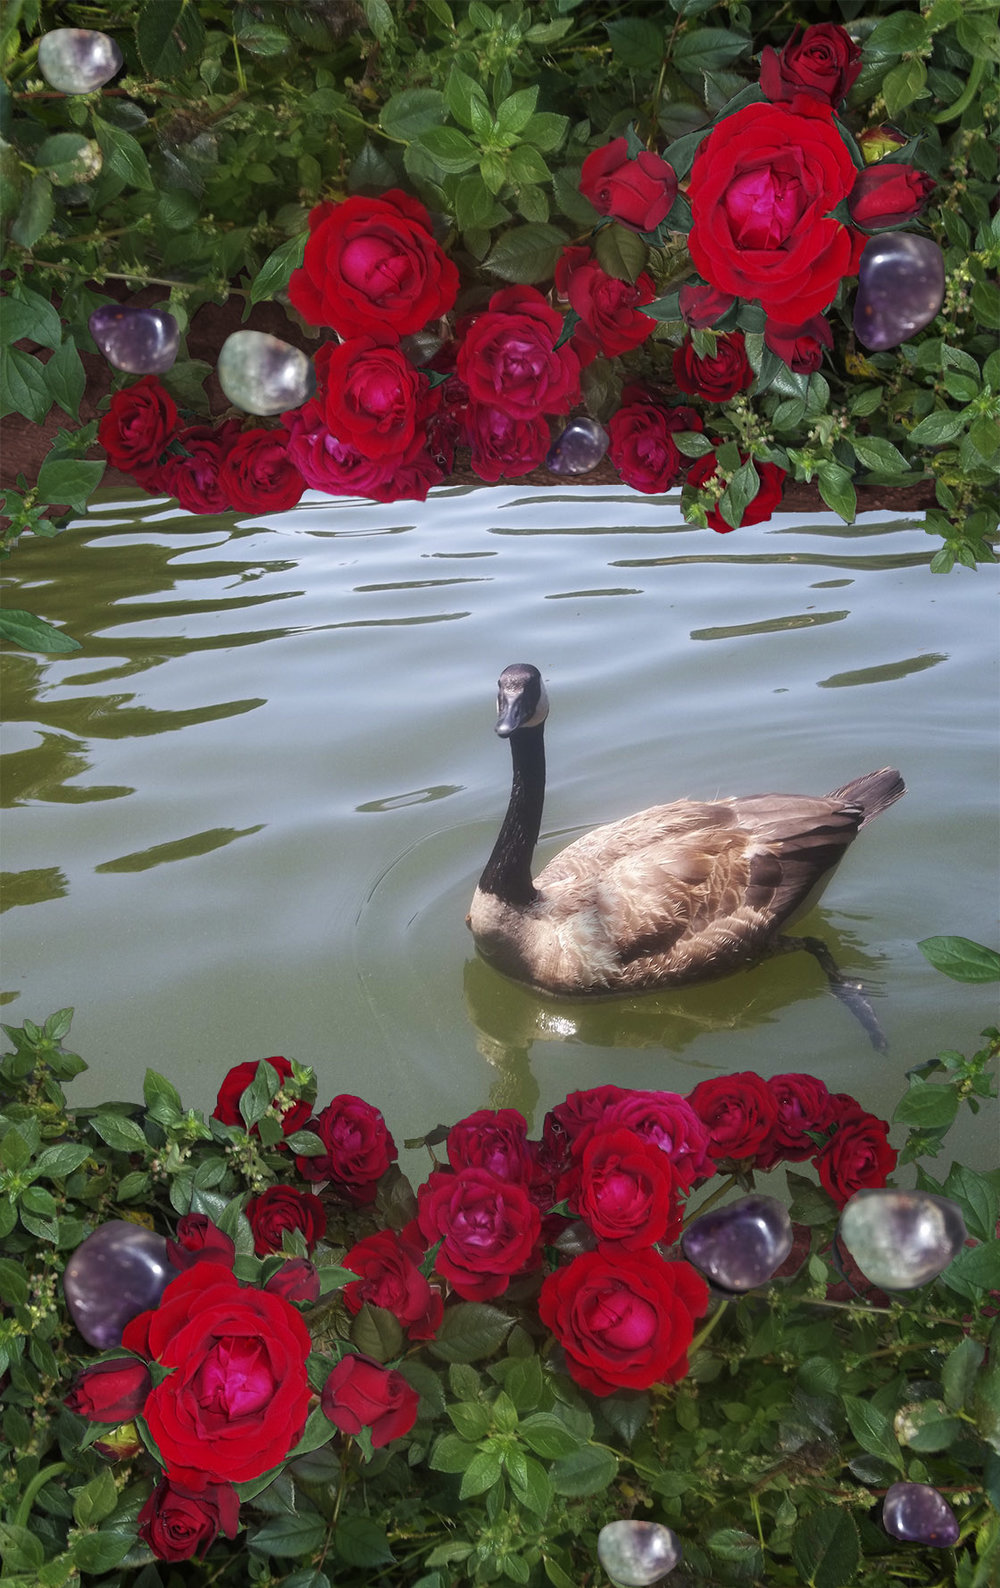 Created in Adobe Photoshop. A photo composite of five images to create a peaceful image of wildlife meets fantasy garden.